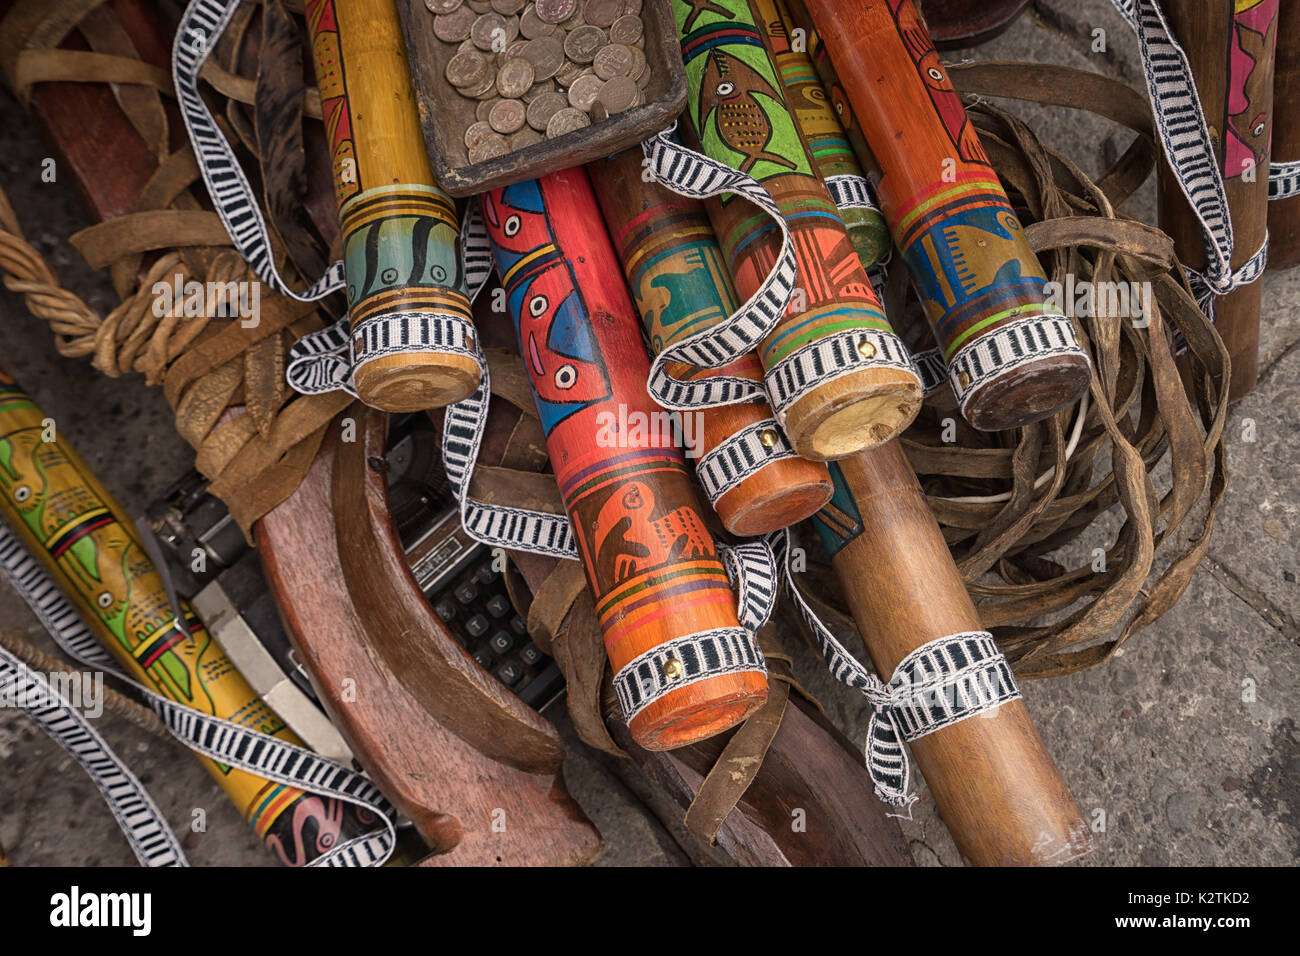 April 29, 2017 Otavalo, Ecuador: indigenous quechua crafts made of wood  selling on the street in the Saturday market - Stock Image